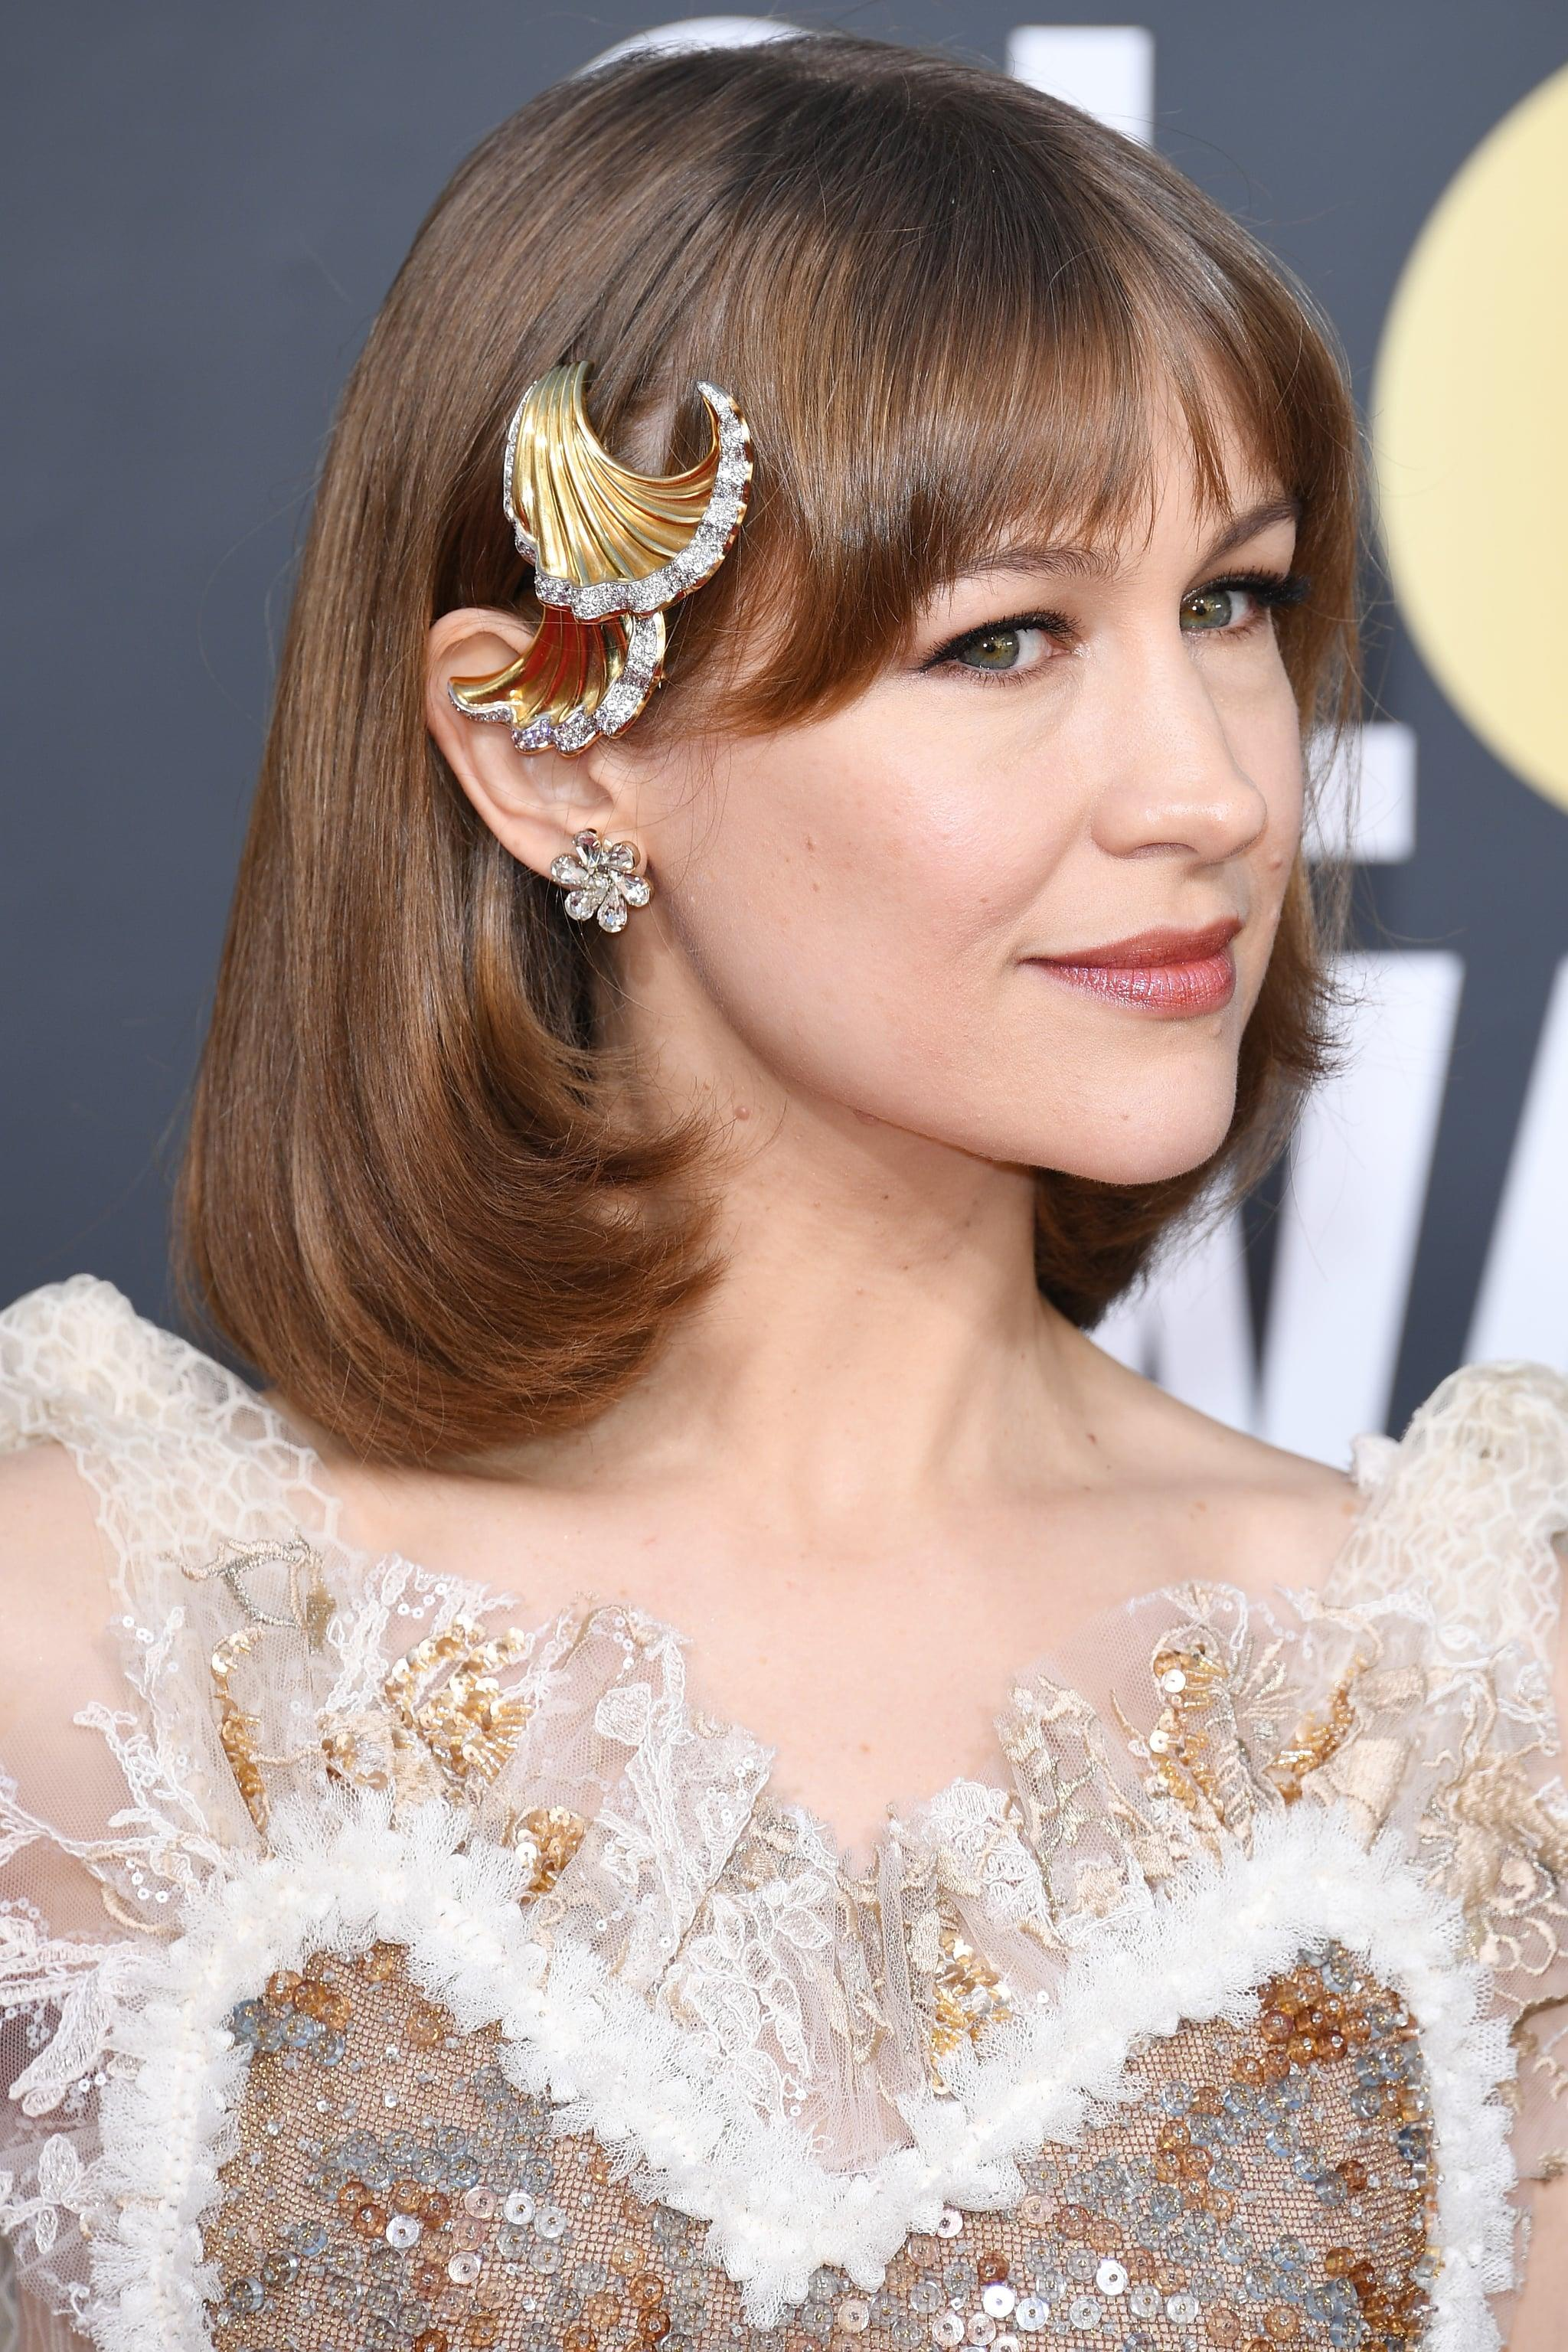 Musician Joanna Newsoms Best Accessory At The Golden Globes Wasnt